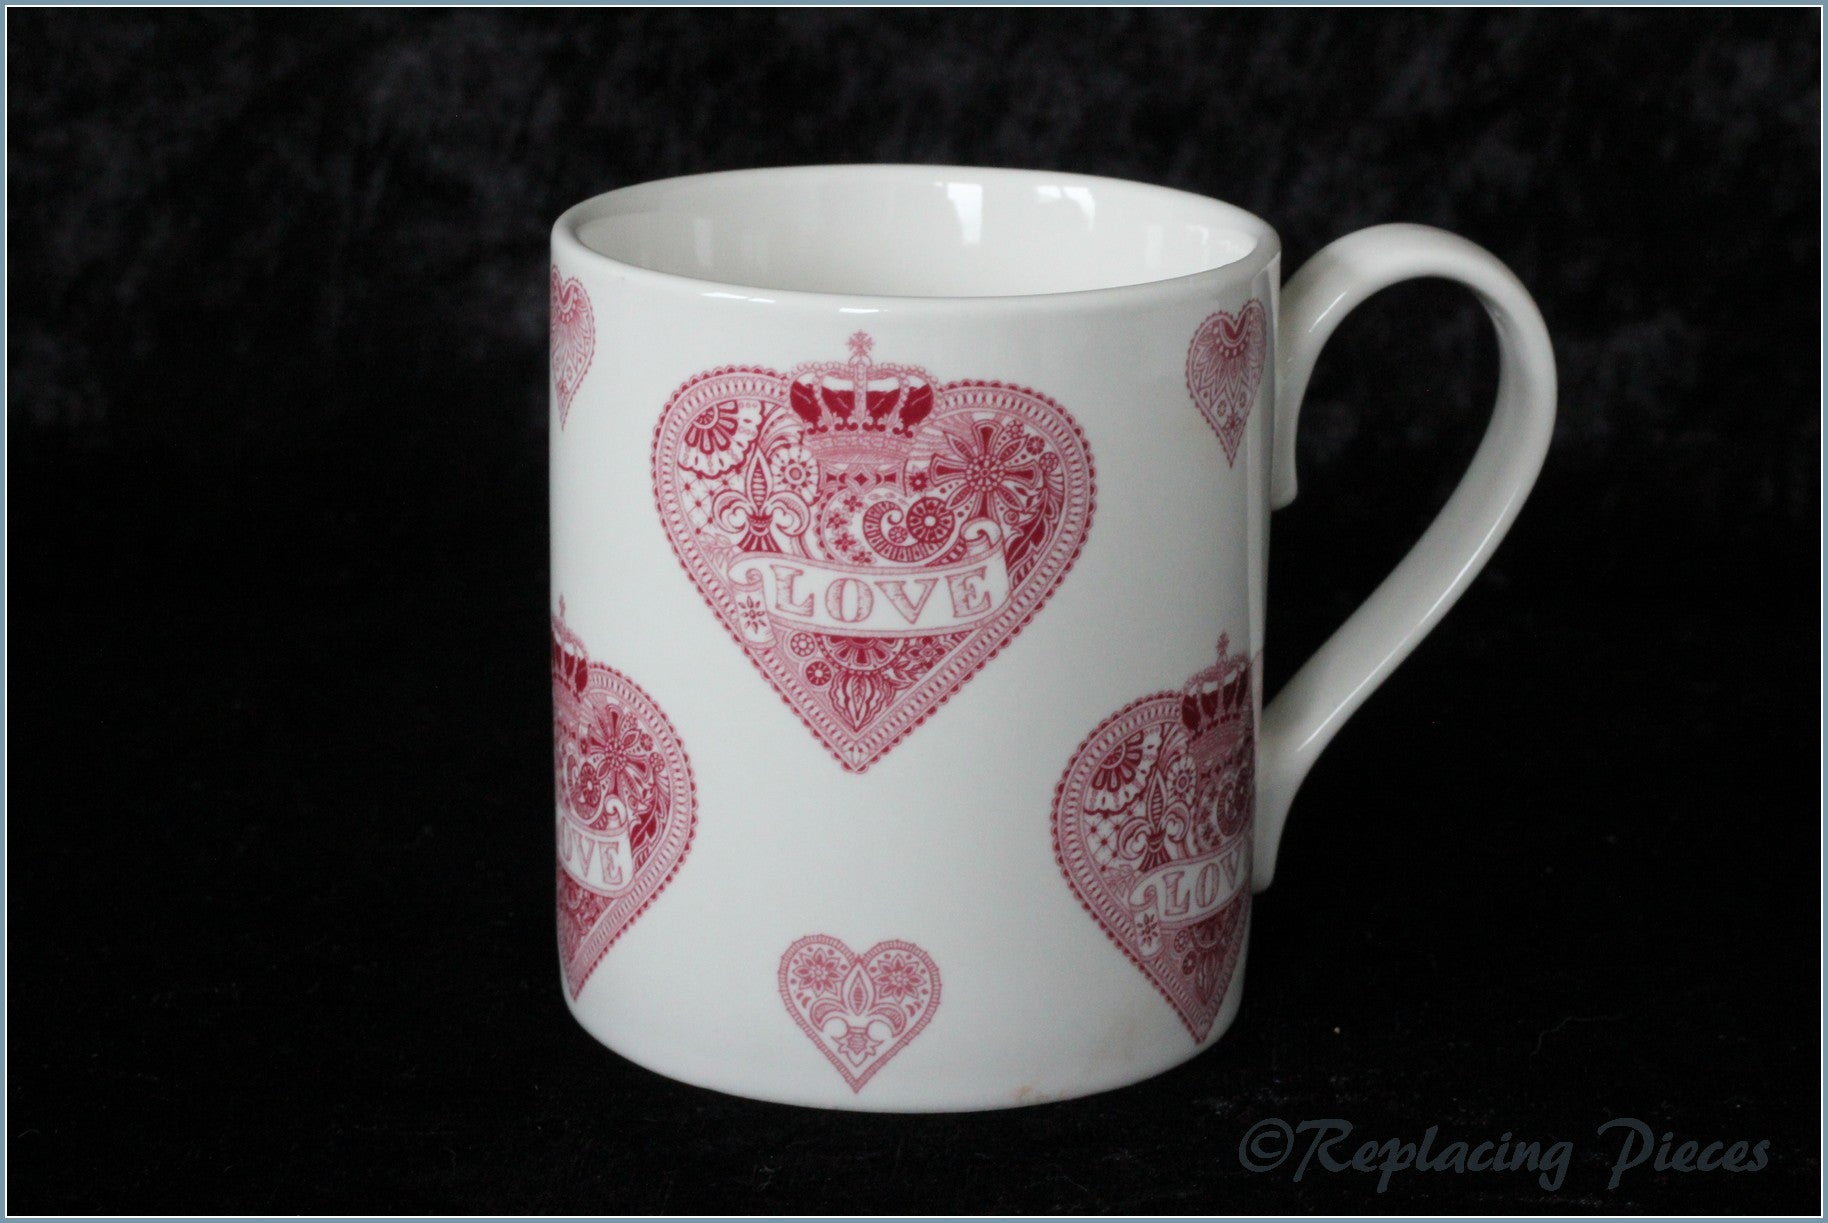 Queens - Made With Love - Mug (Pink Hearts)